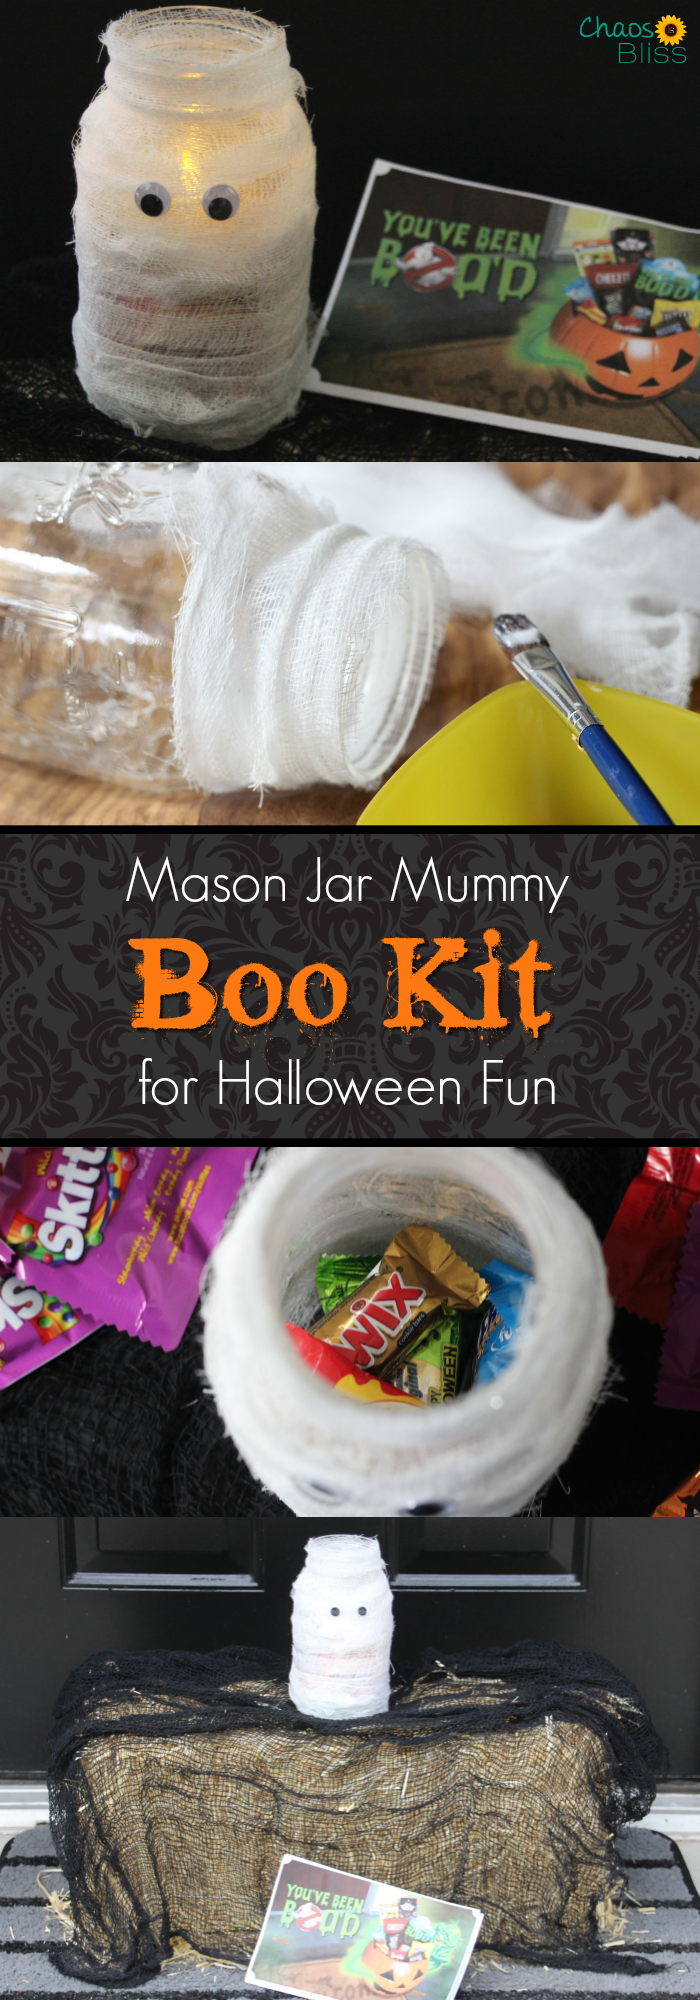 Here's an easy Mason jar craft for Halloween, making a BOO Kit for neighborhood fun!